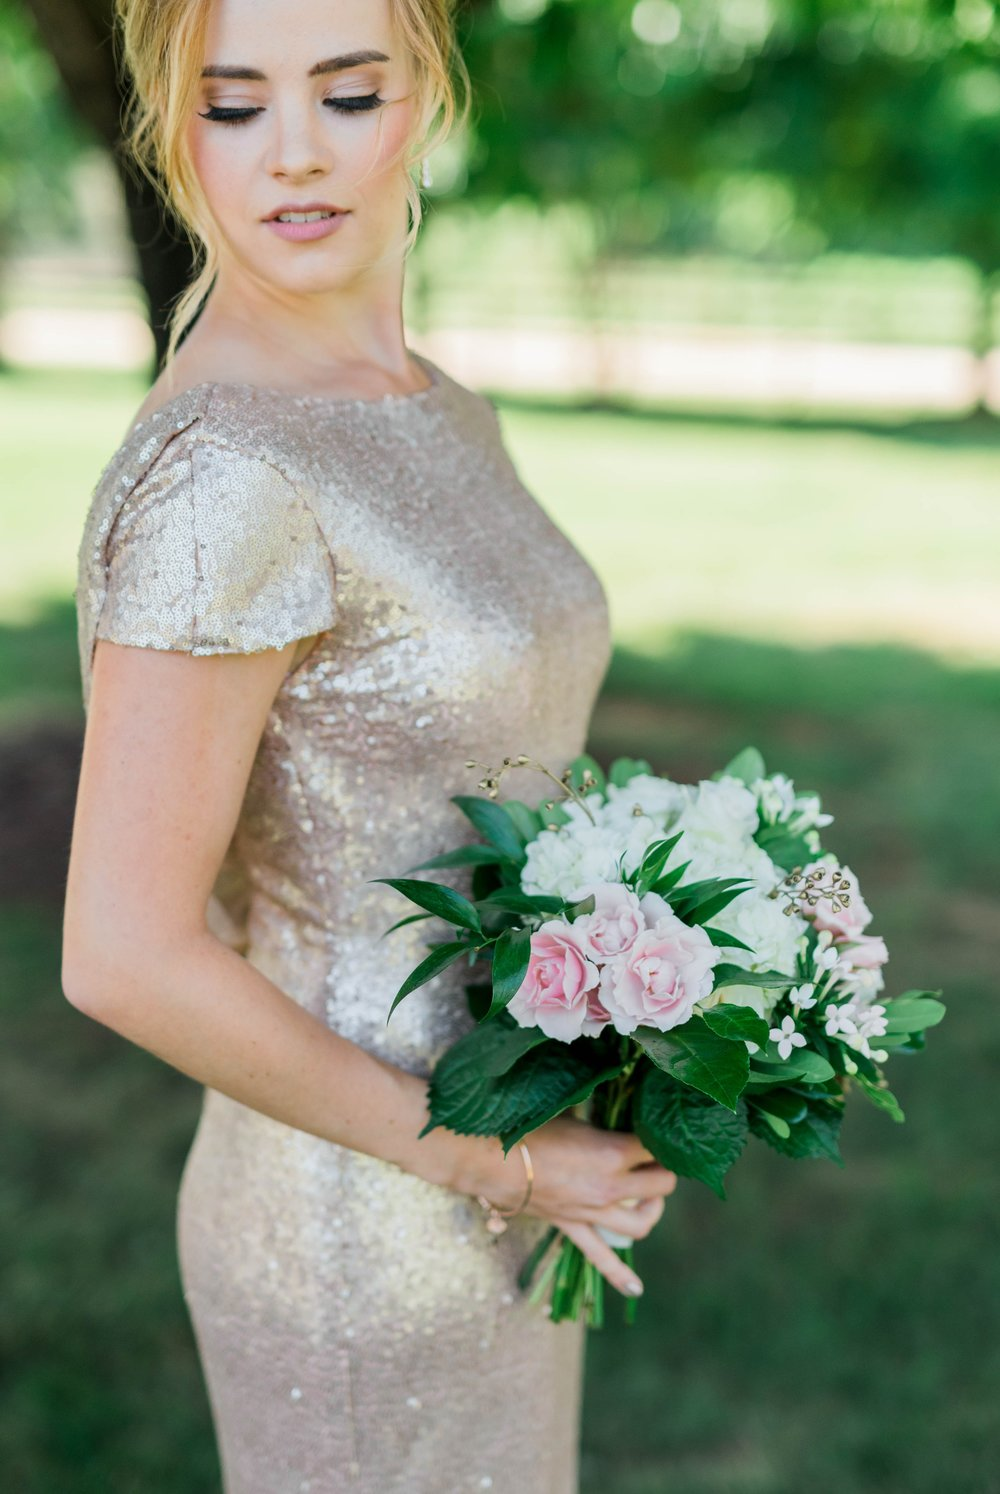 westmanorestate_entwinedevents_lynchburgweddingphotographer_Virginiaweddingphotographer_kateyam 38.jpg